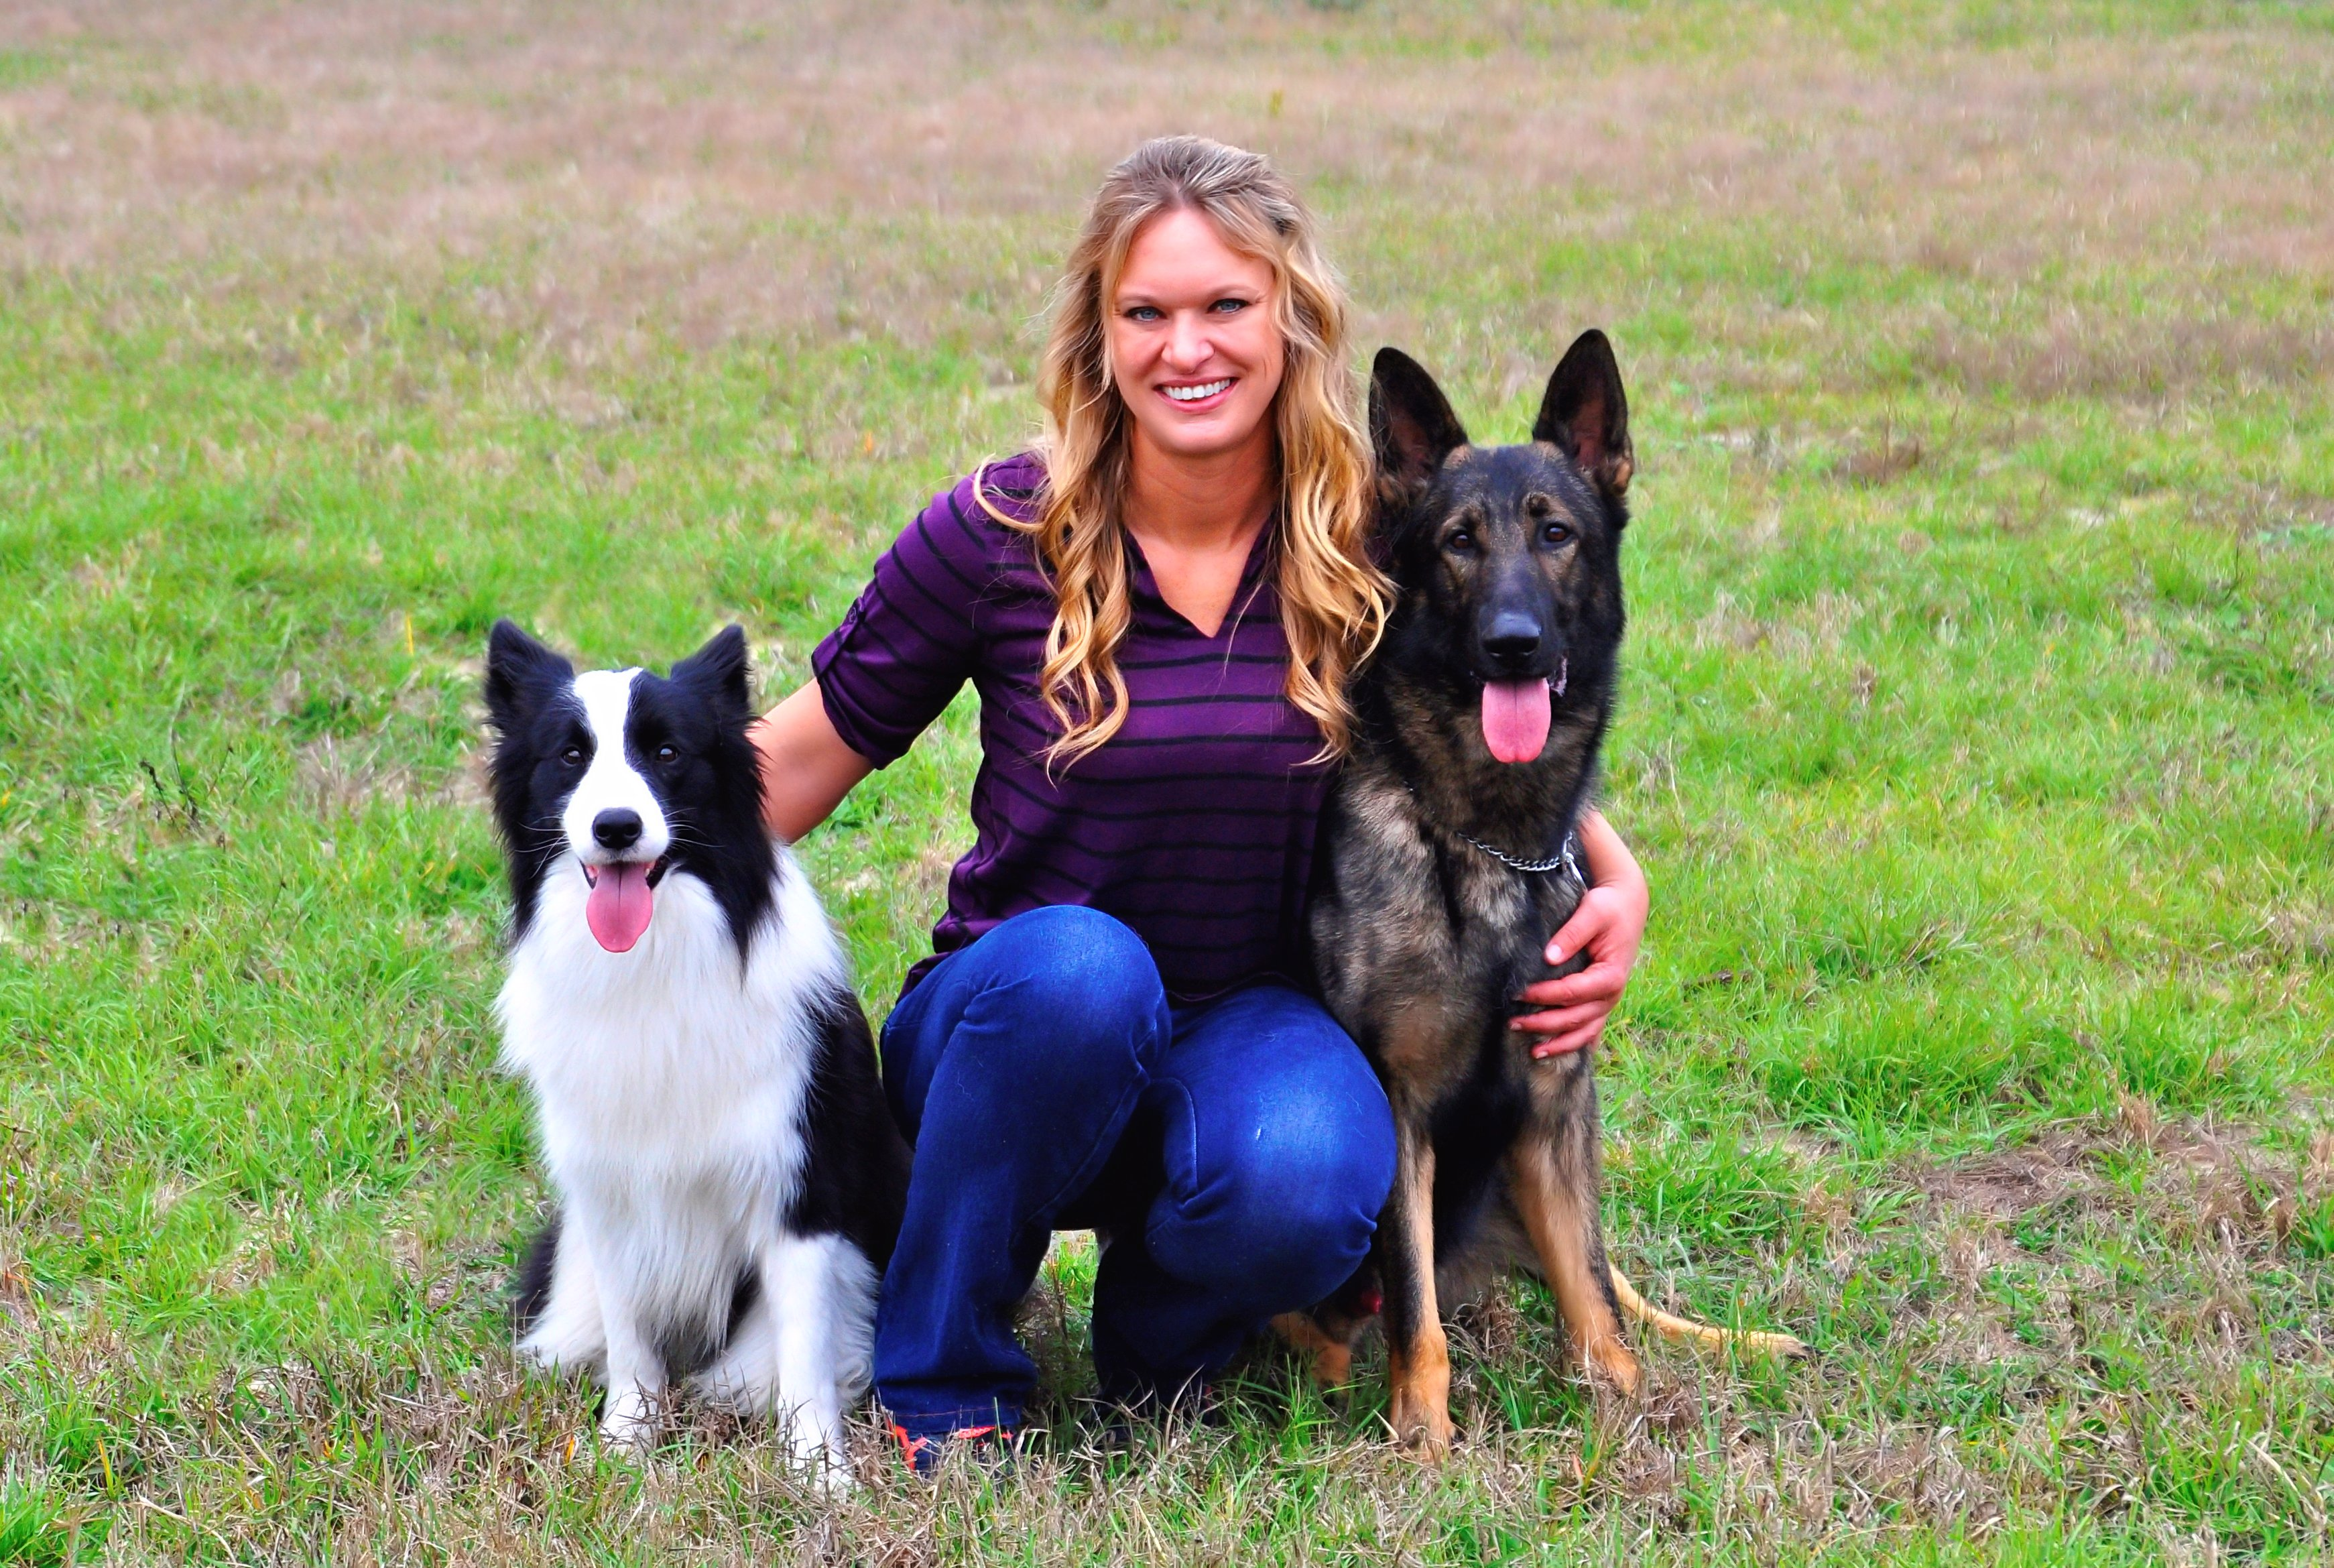 About dog boarding dog training and dog grooming stephanie and her dogs have achieved numerous titles and national rankings in obedience earning numerous high in trial awards stephanie prides herself on solutioingenieria Gallery